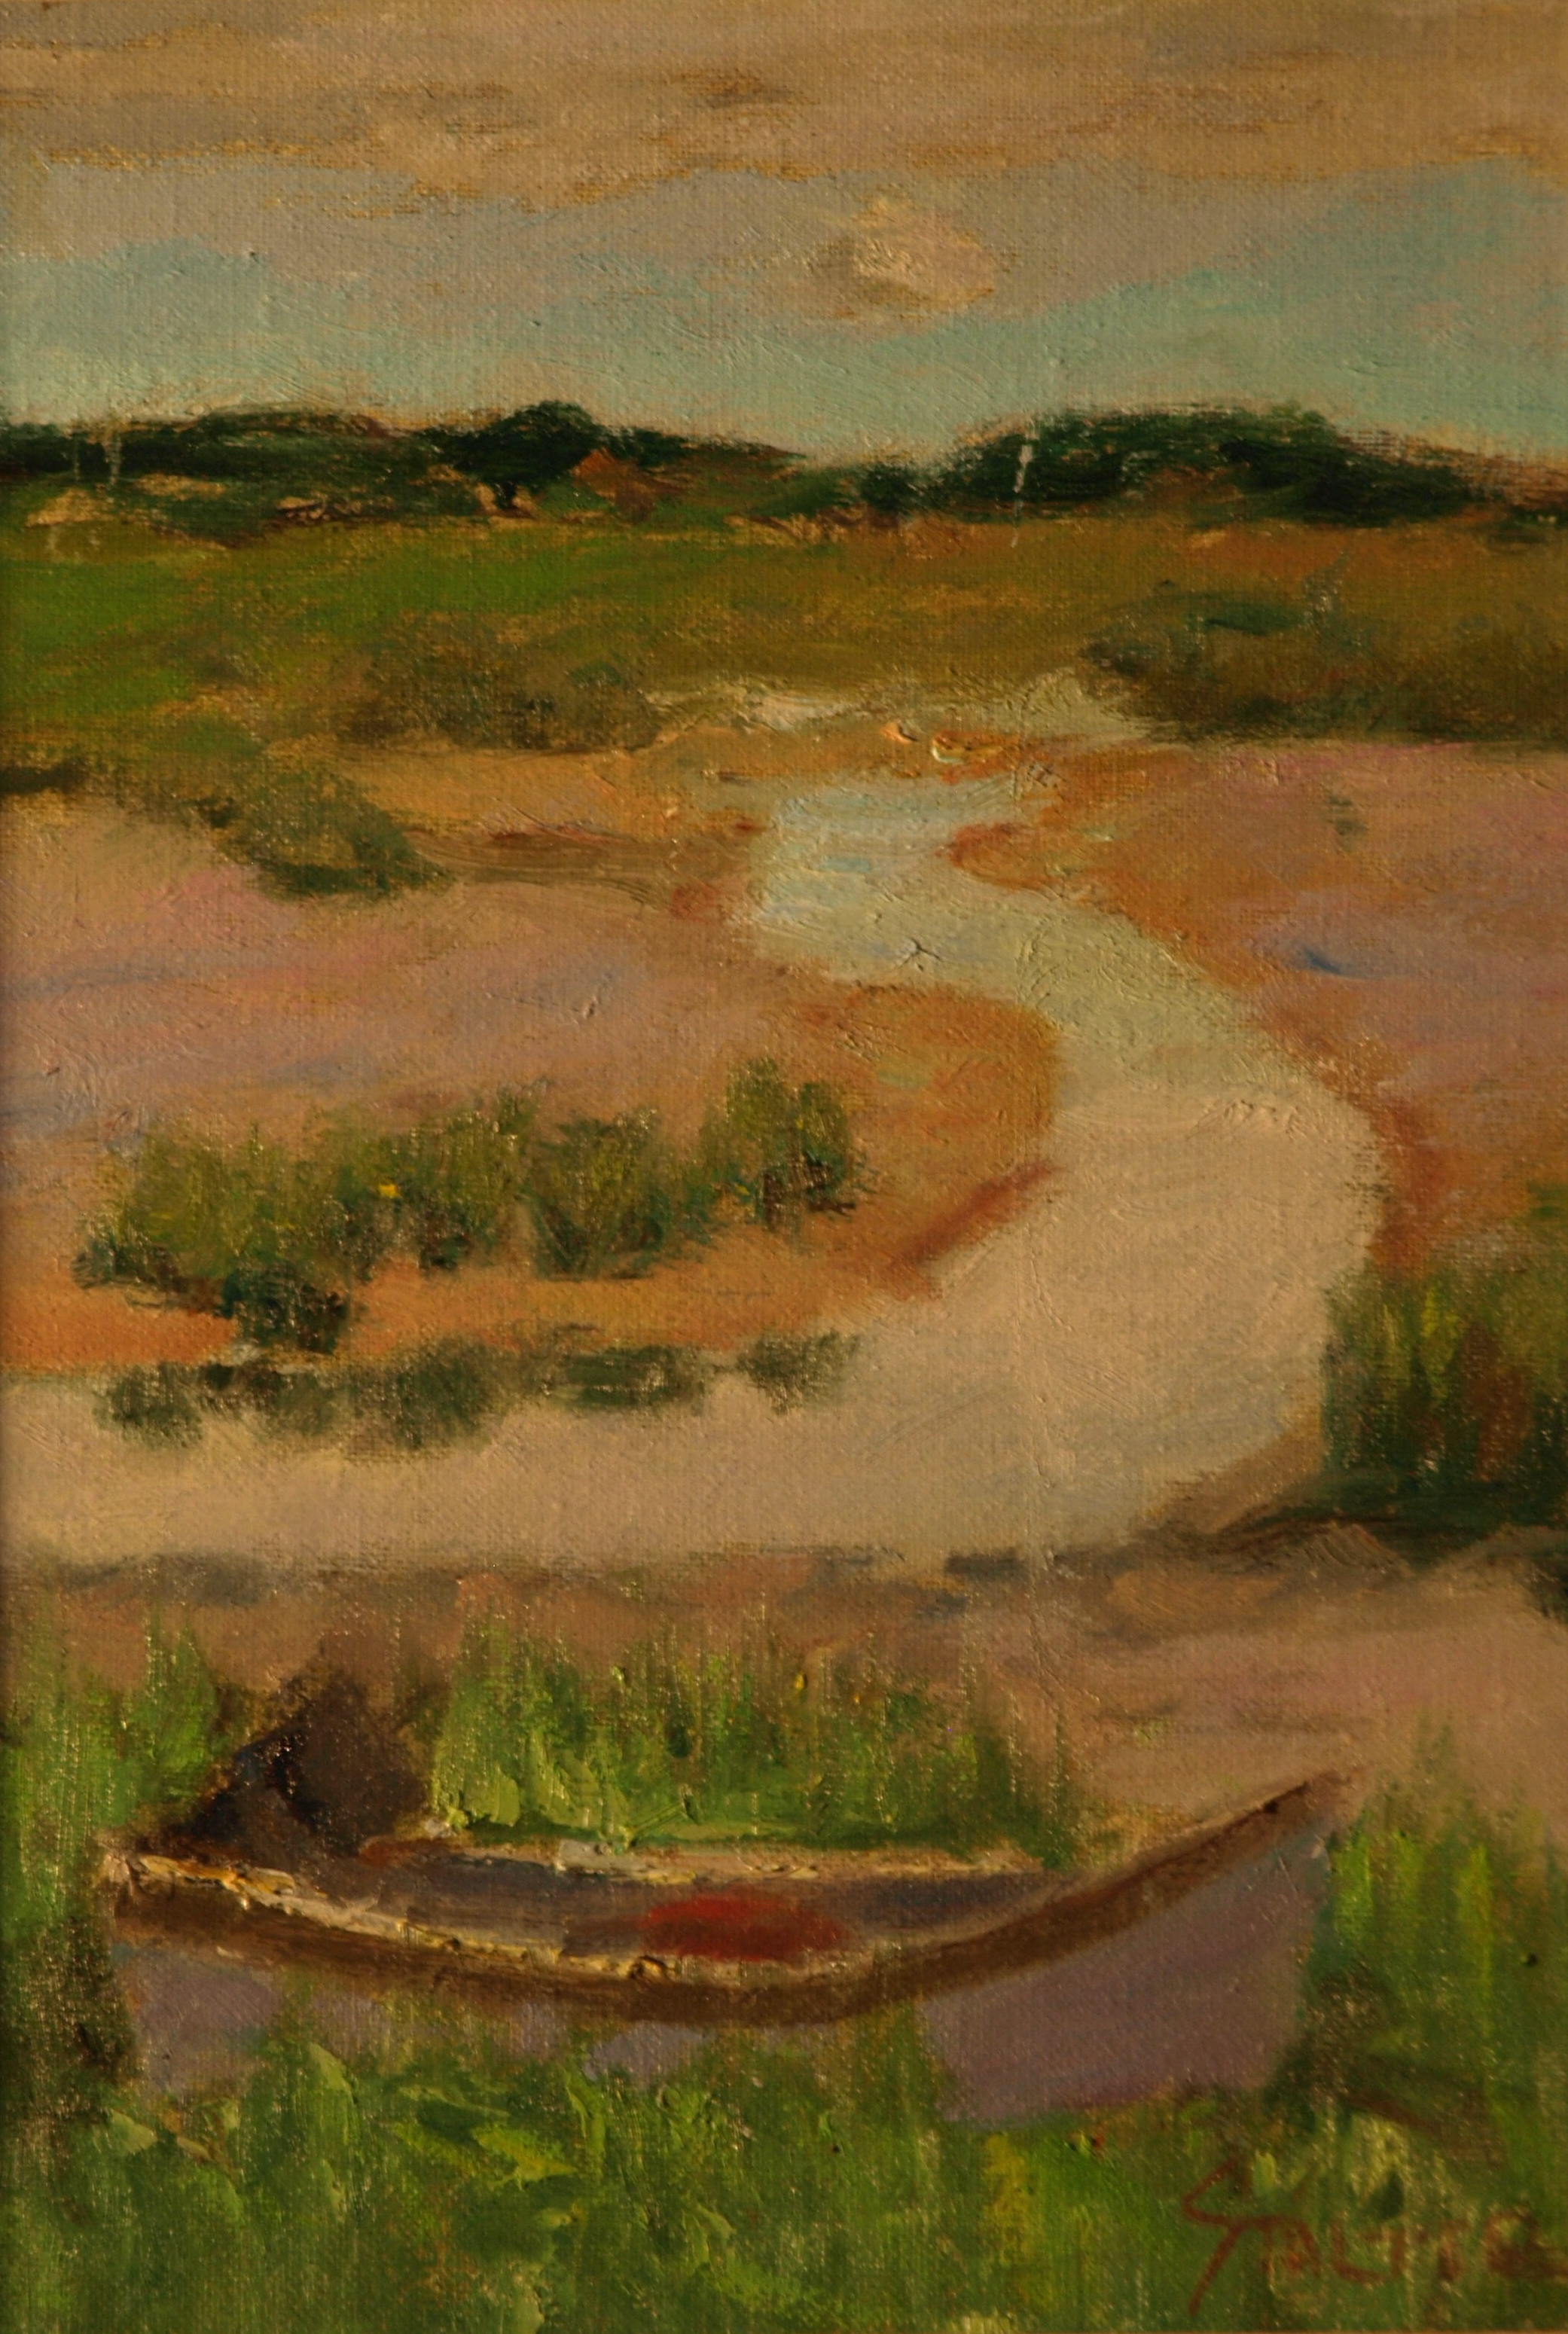 Rowboat in Marsh, Oil on Canvas on Panel, 12 x 9 Inches, by Richard Stalter, $225